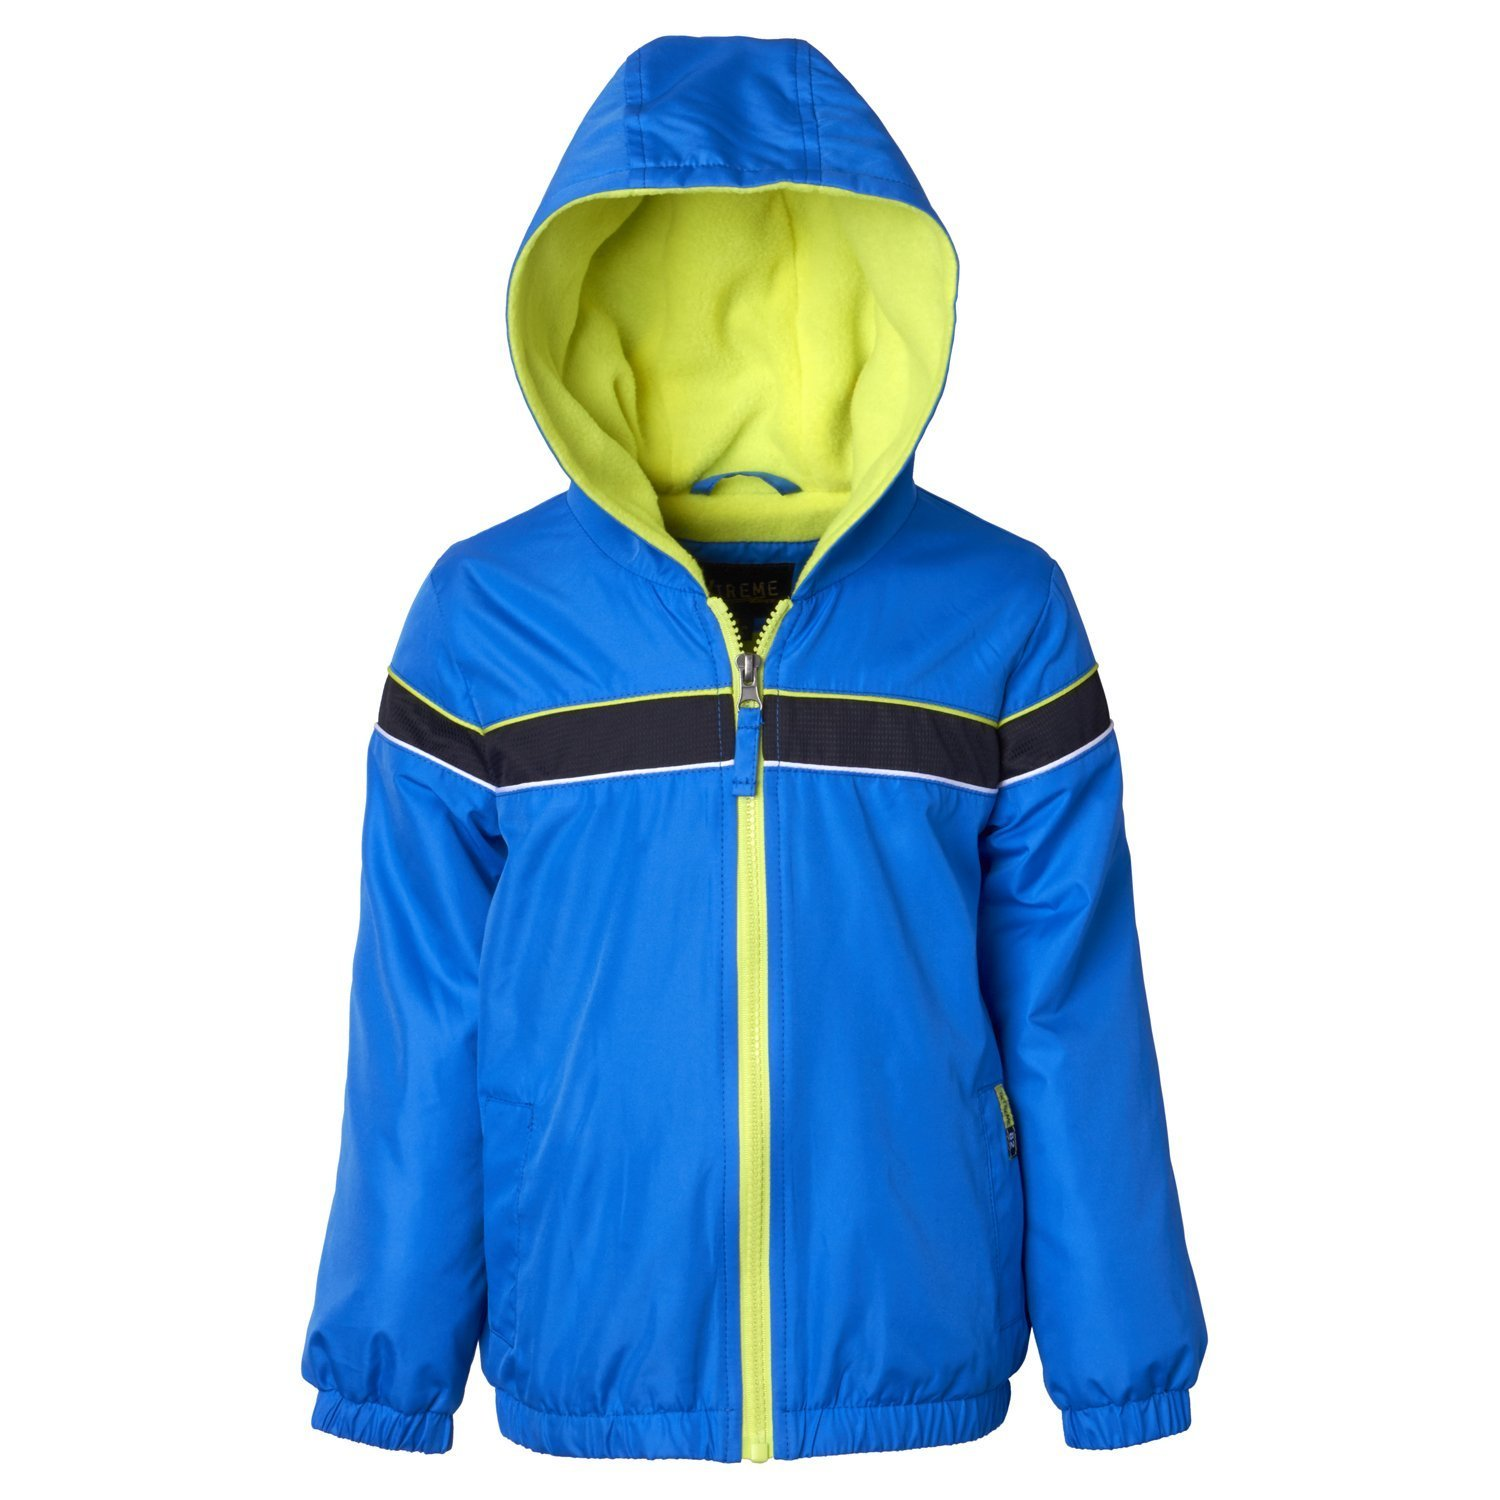 iXtreme Toddler Boys Colorblock Windbreaker With Polar Fleece Lining IX803397-BLU-4B